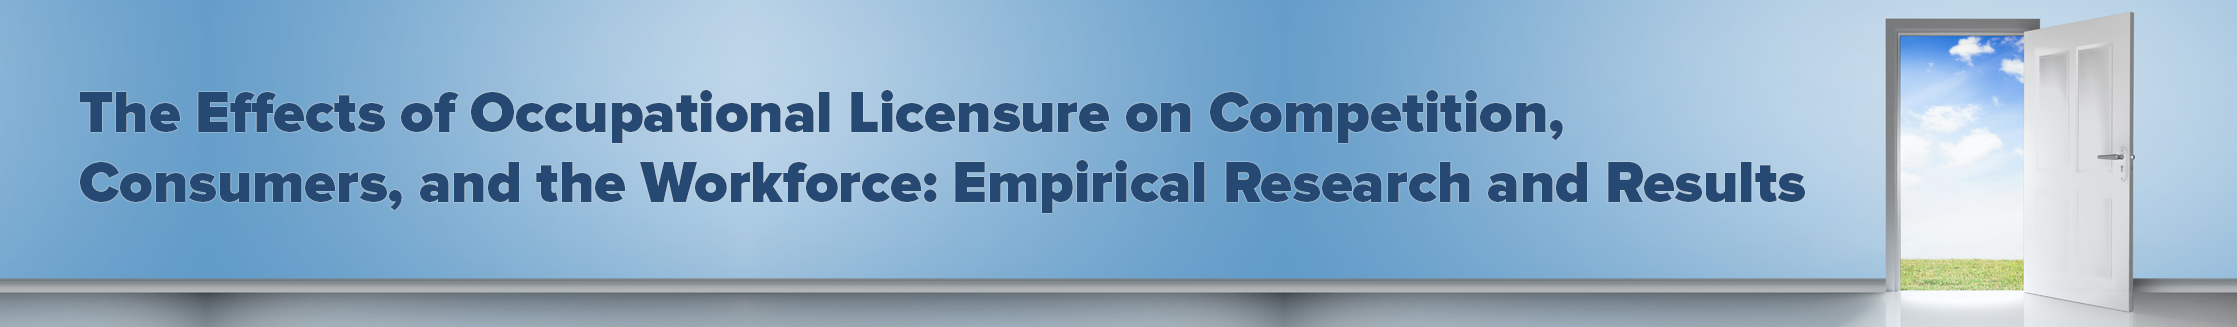 The Effects of Occupational Licensure on Competition, Consumers, and the Workforce: Empirical Research and Results